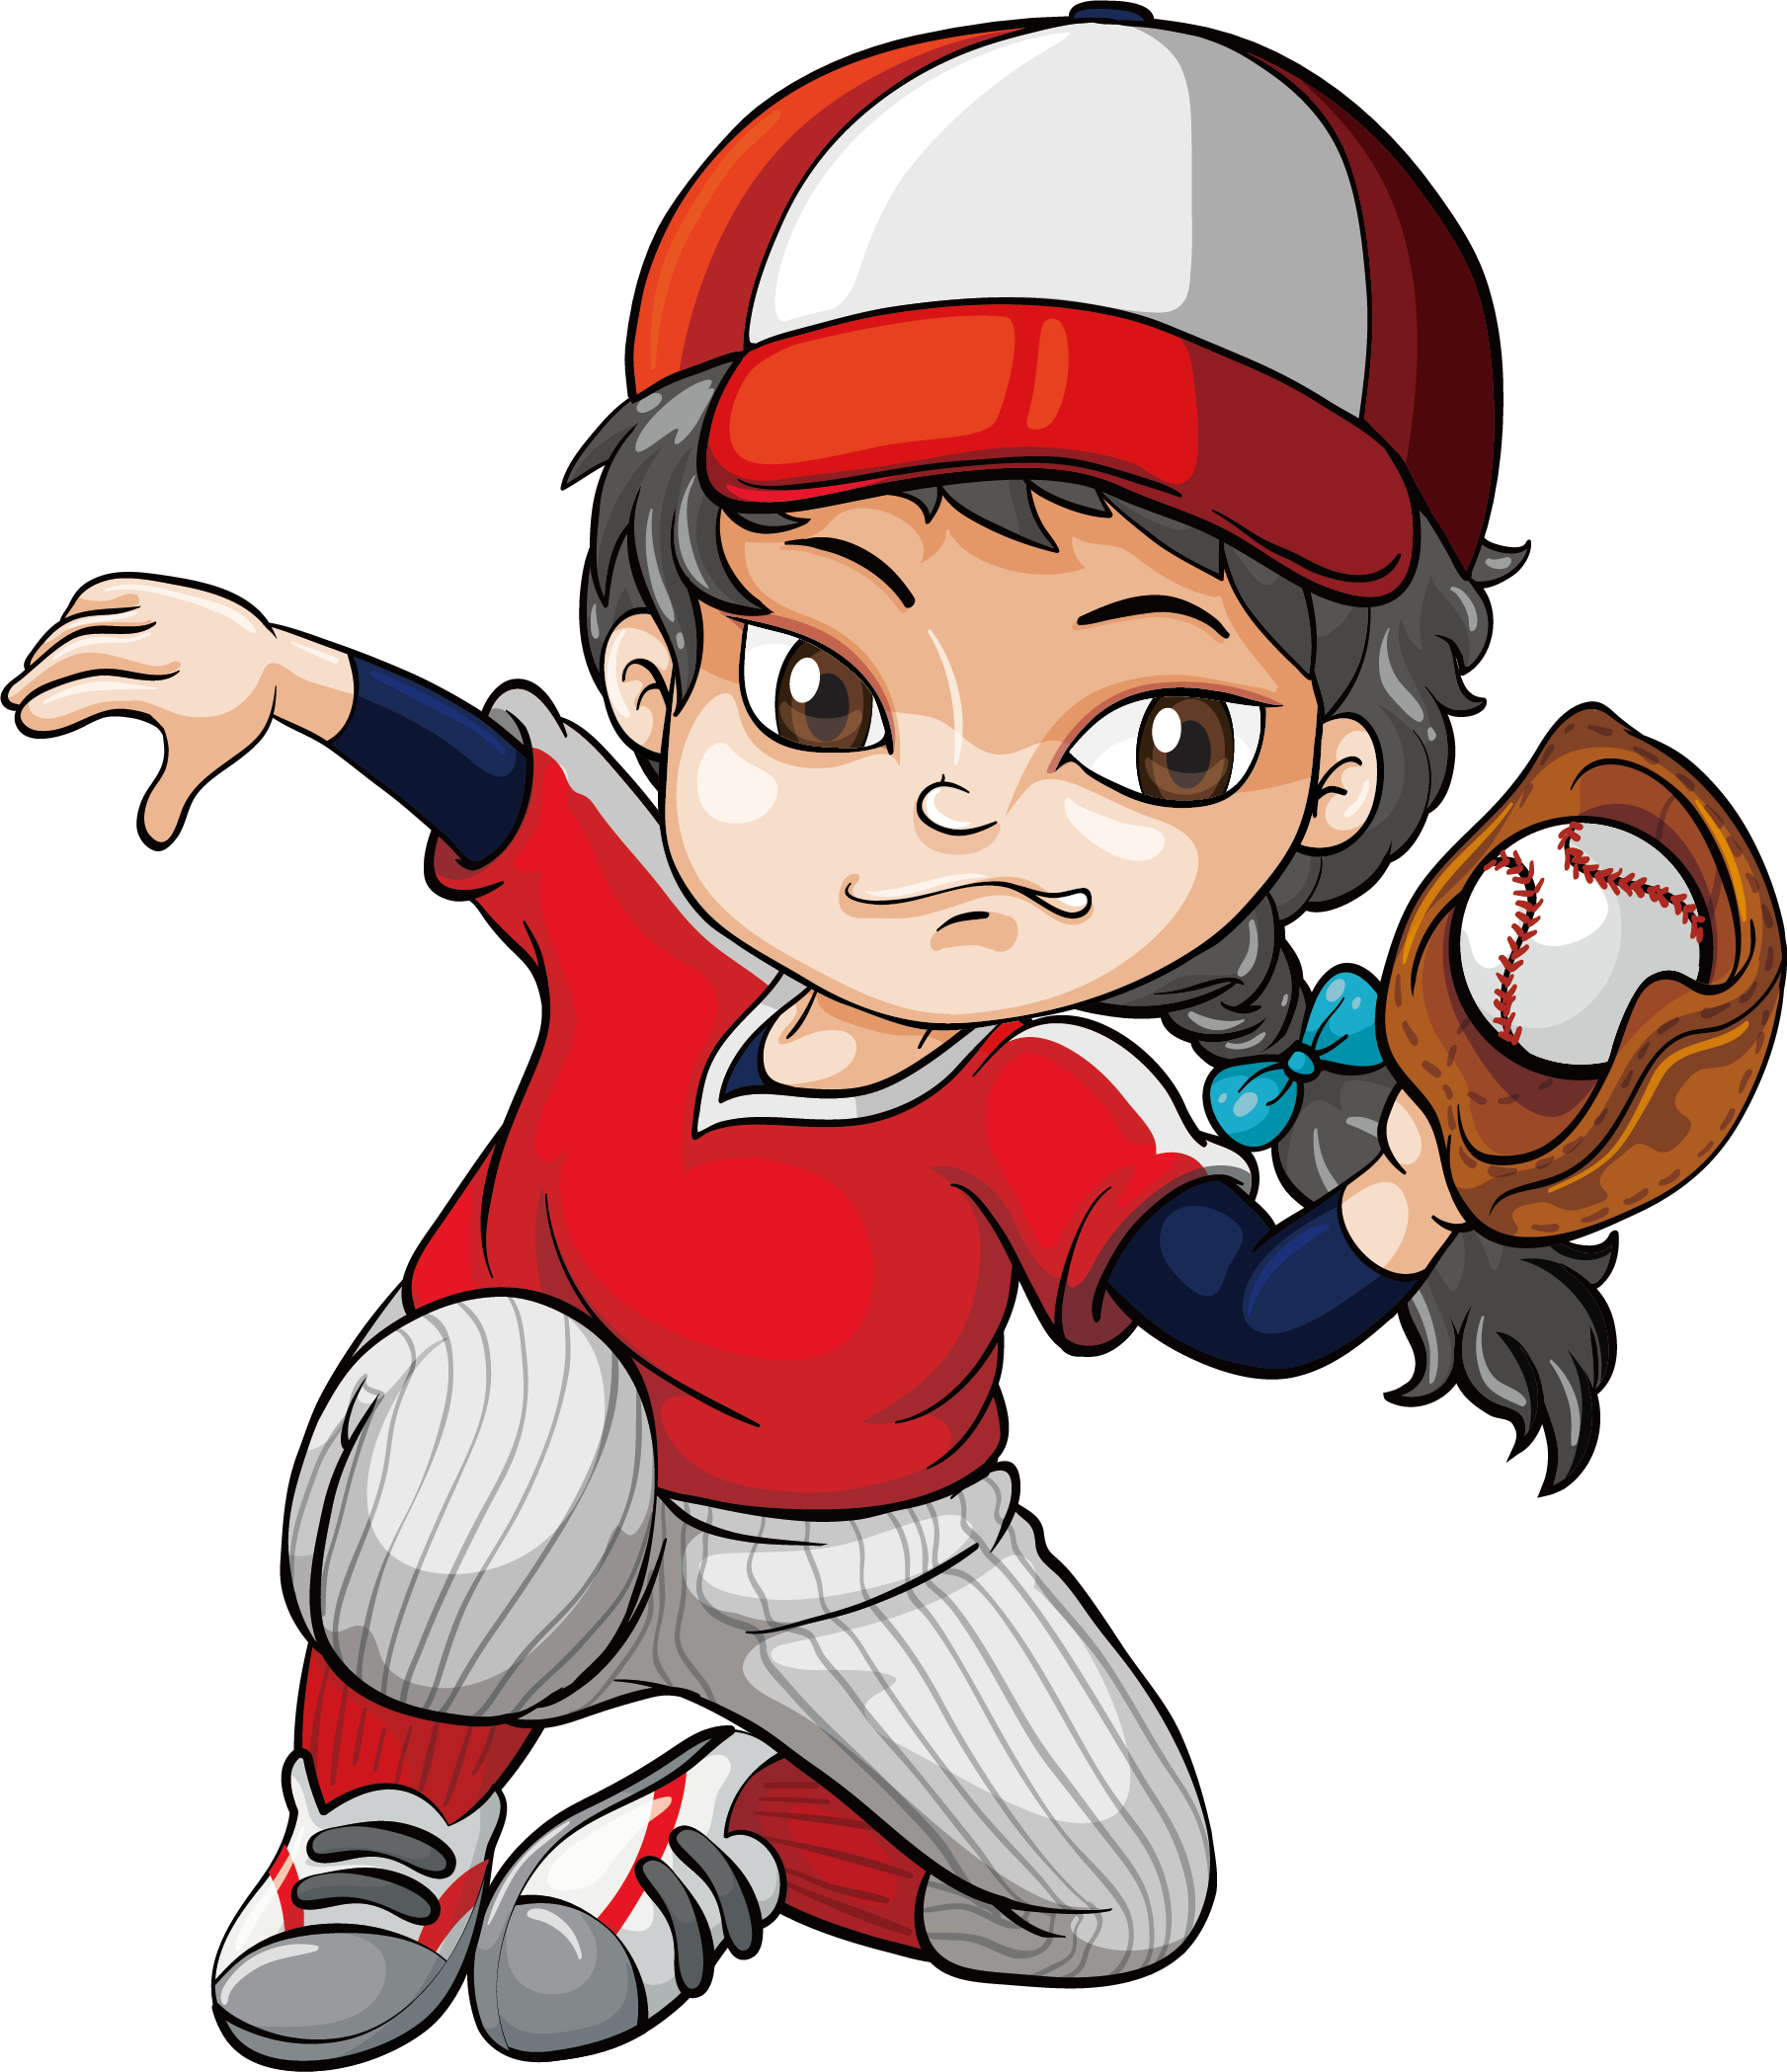 Baseball girl clipart png freeuse stock Baseball Batting Pitcher Clip art - Baseball catch 1809*2098 ... png freeuse stock